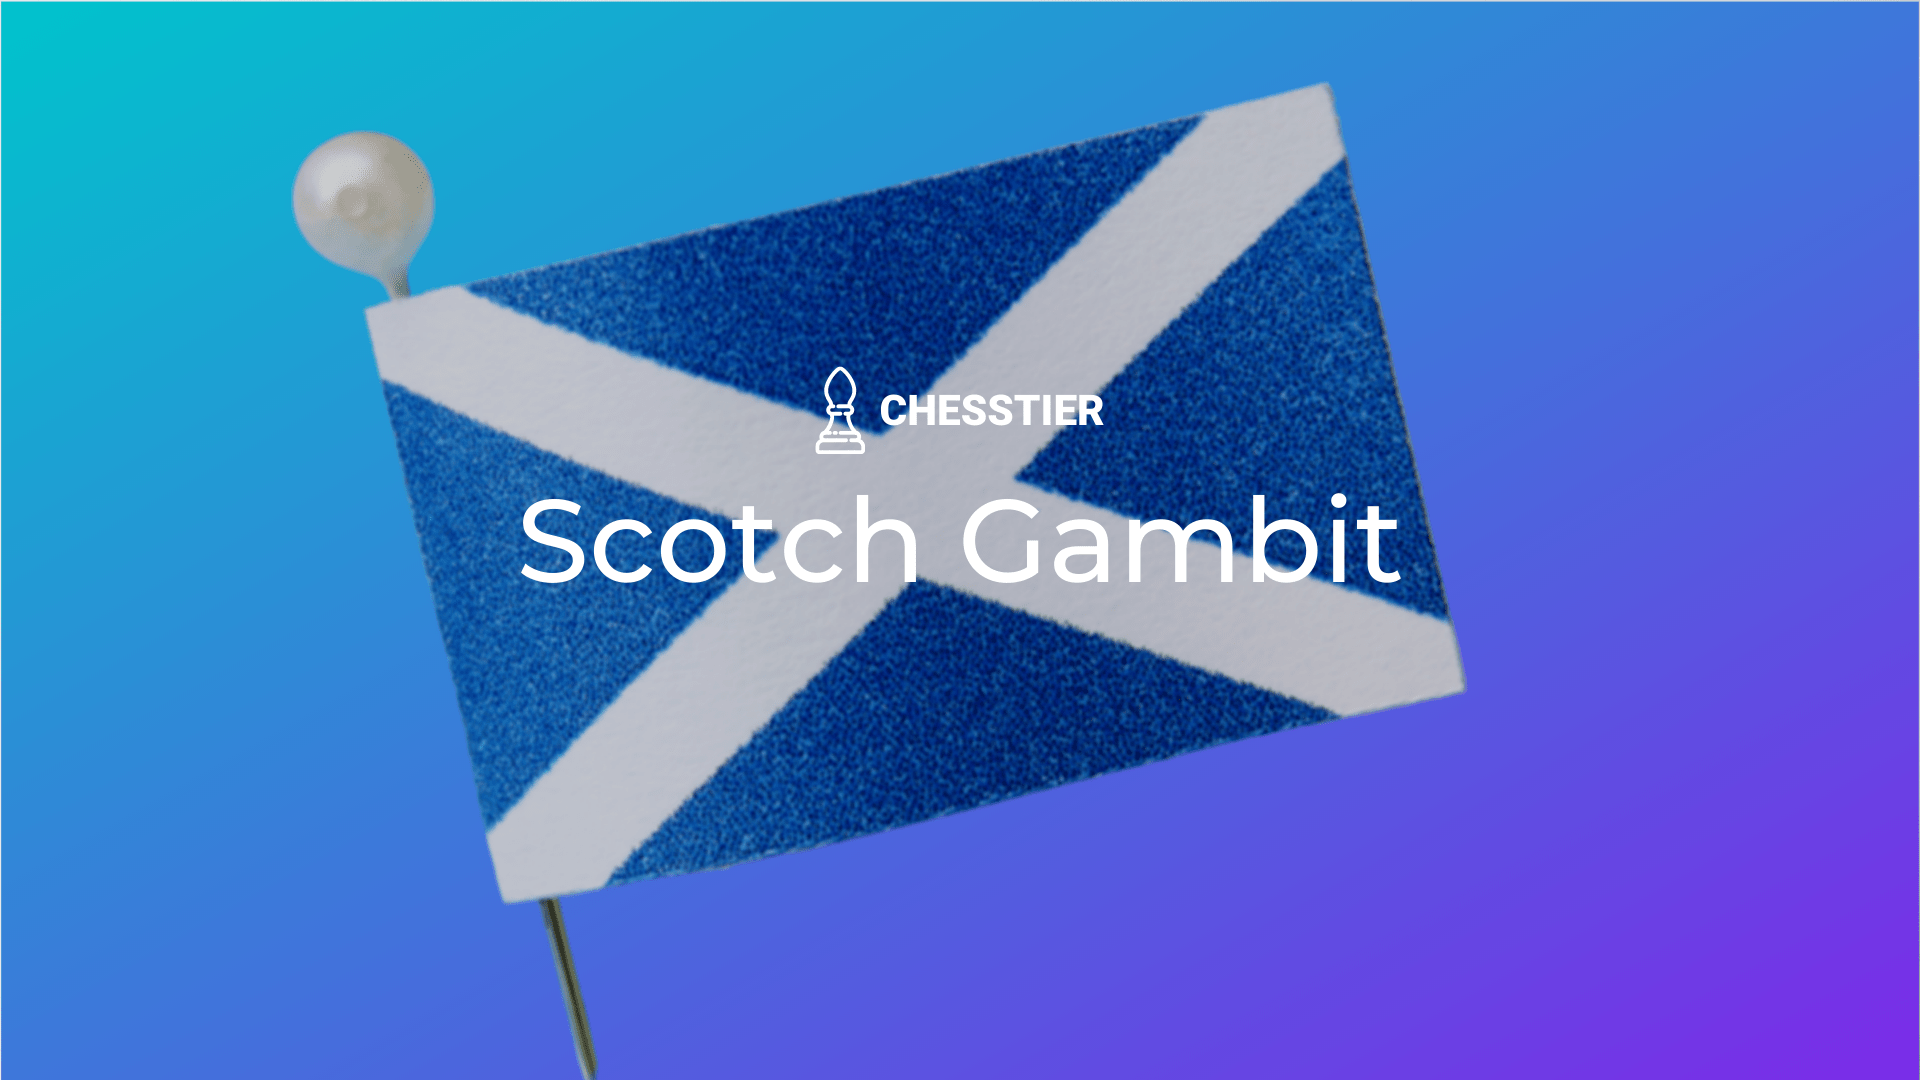 Scotch Gambit Chess Cover